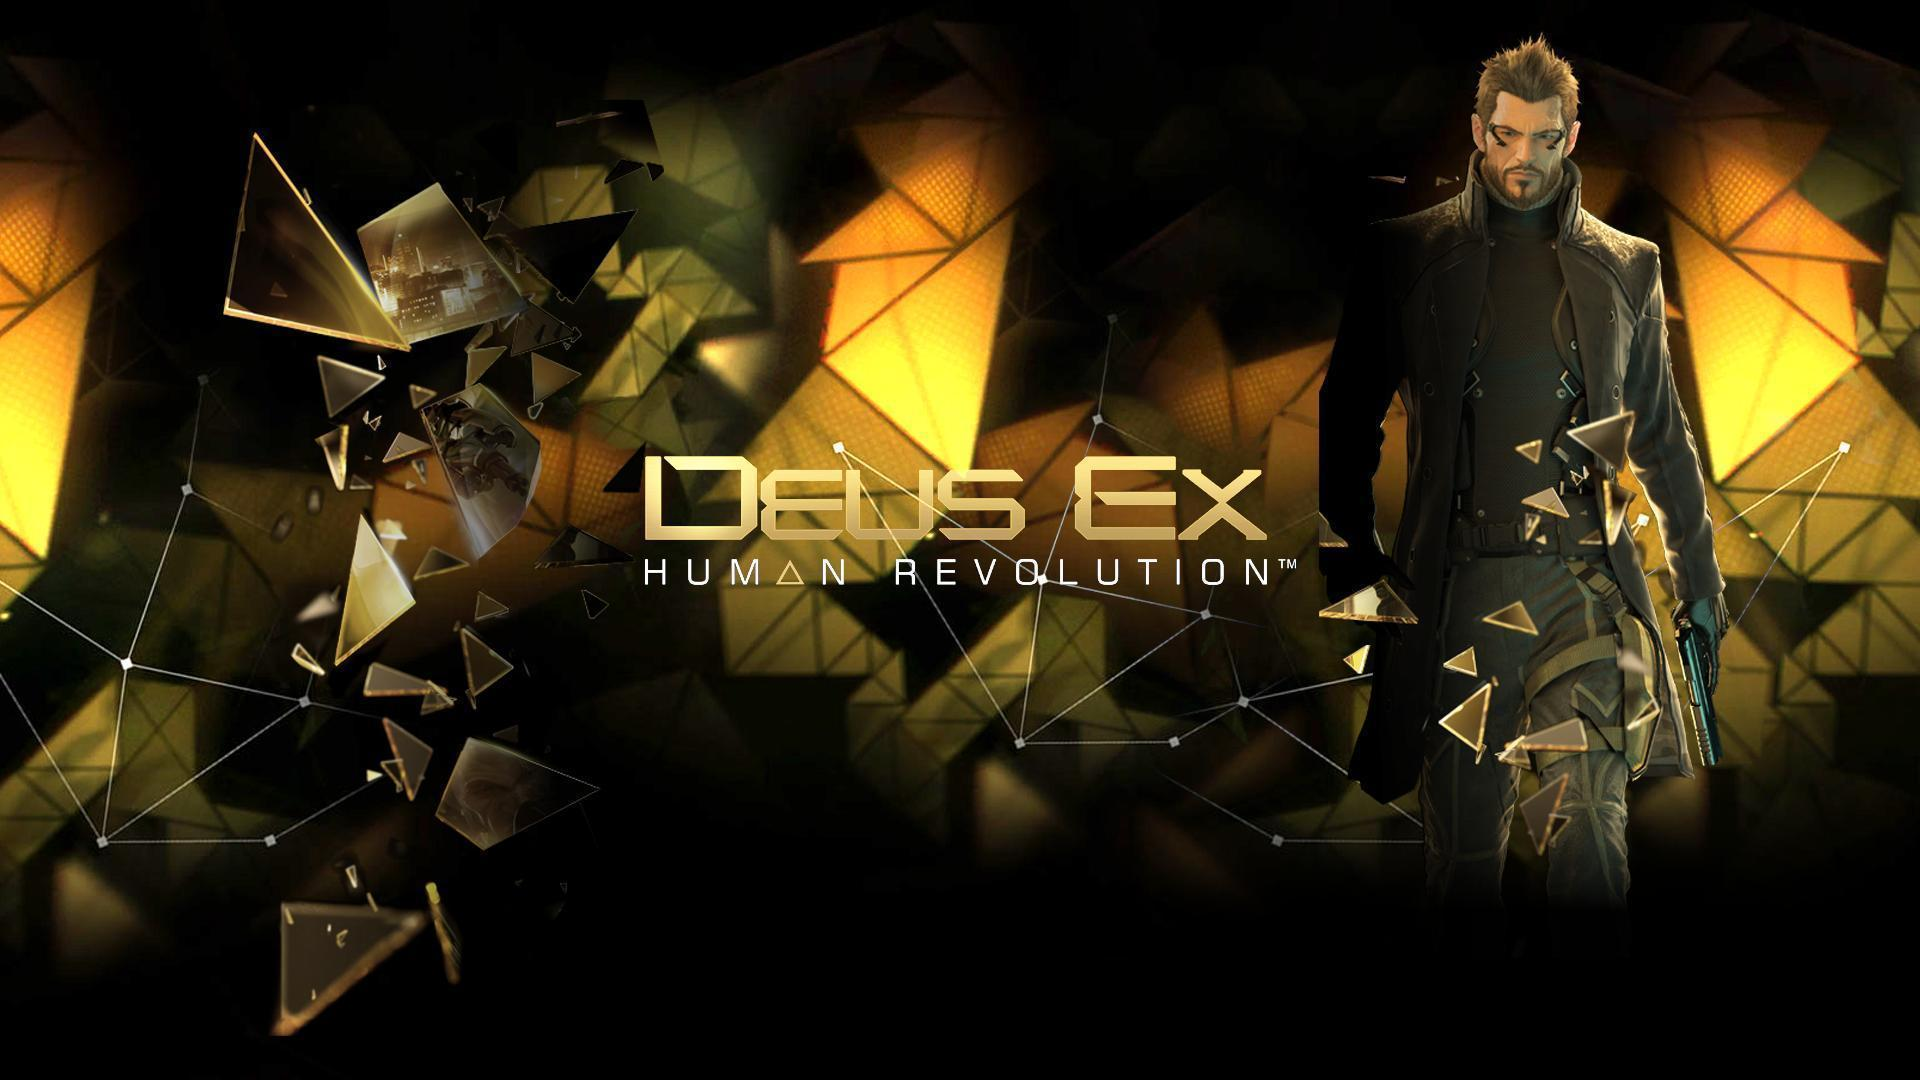 Deus Ex Human Revolution Iphone Wallpapers